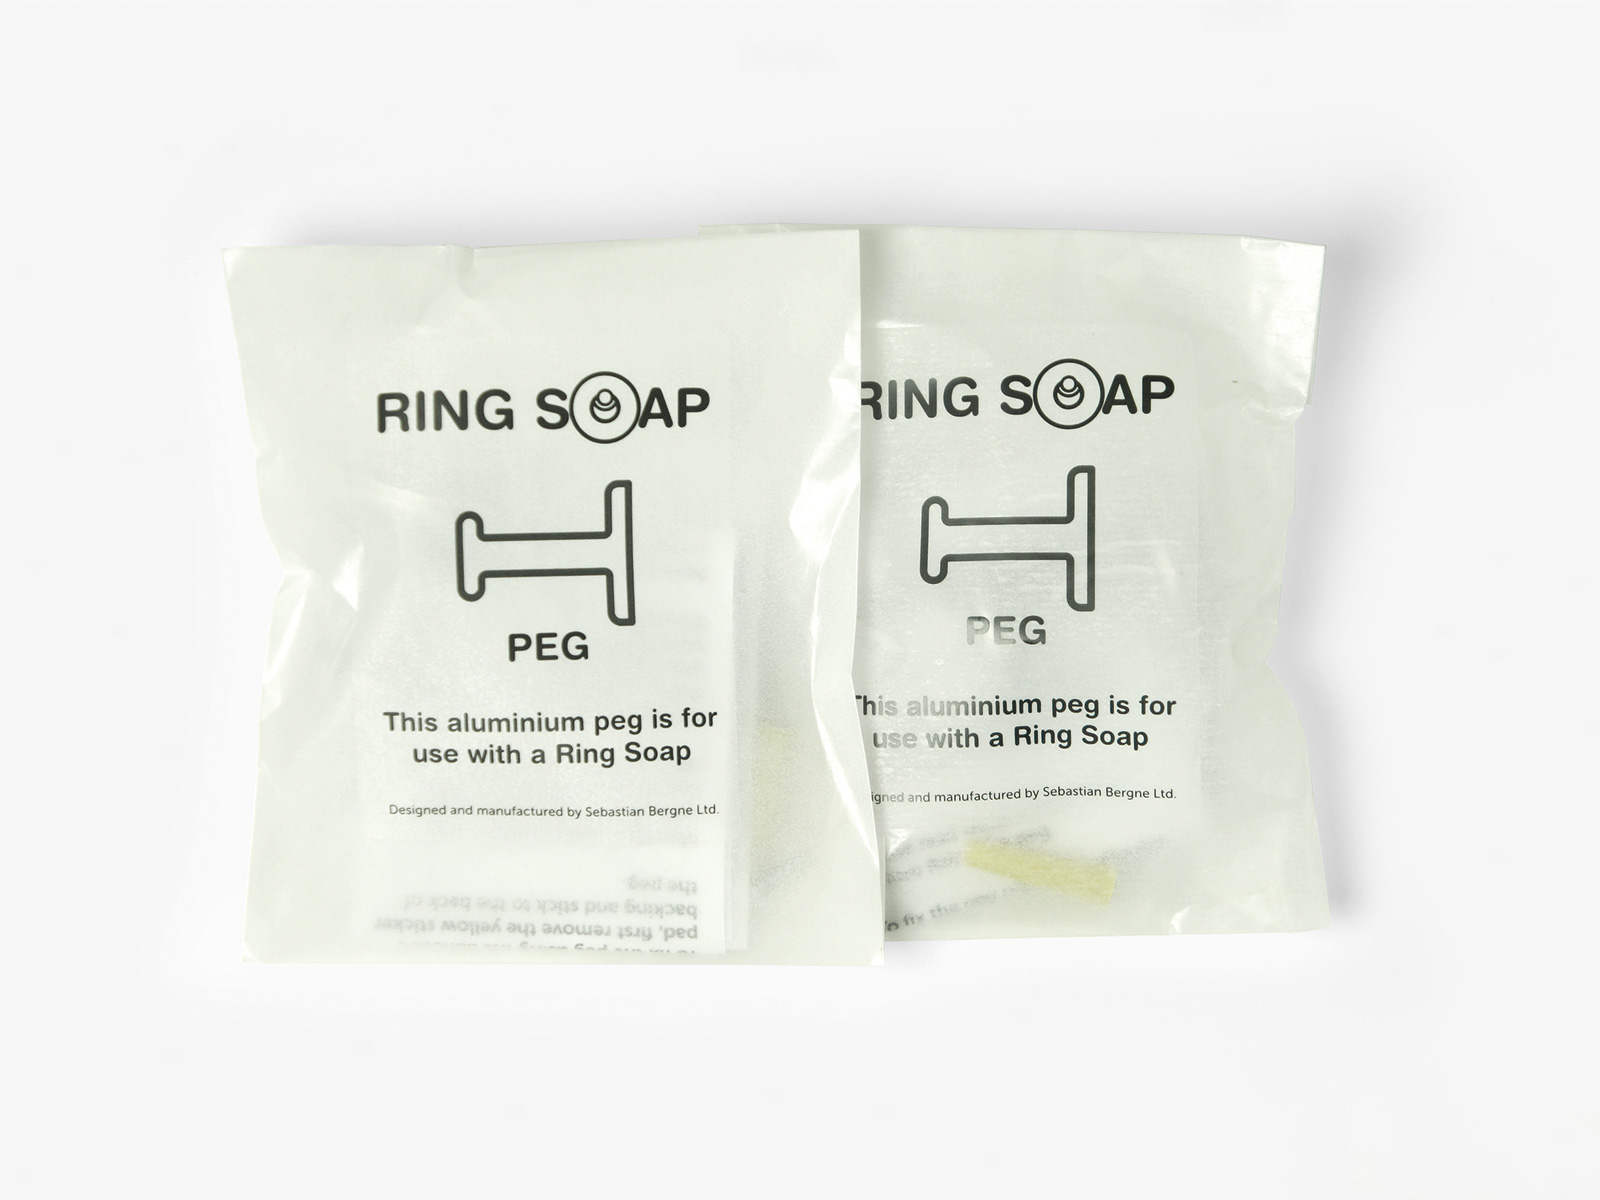 2 Ring Soap peg packets